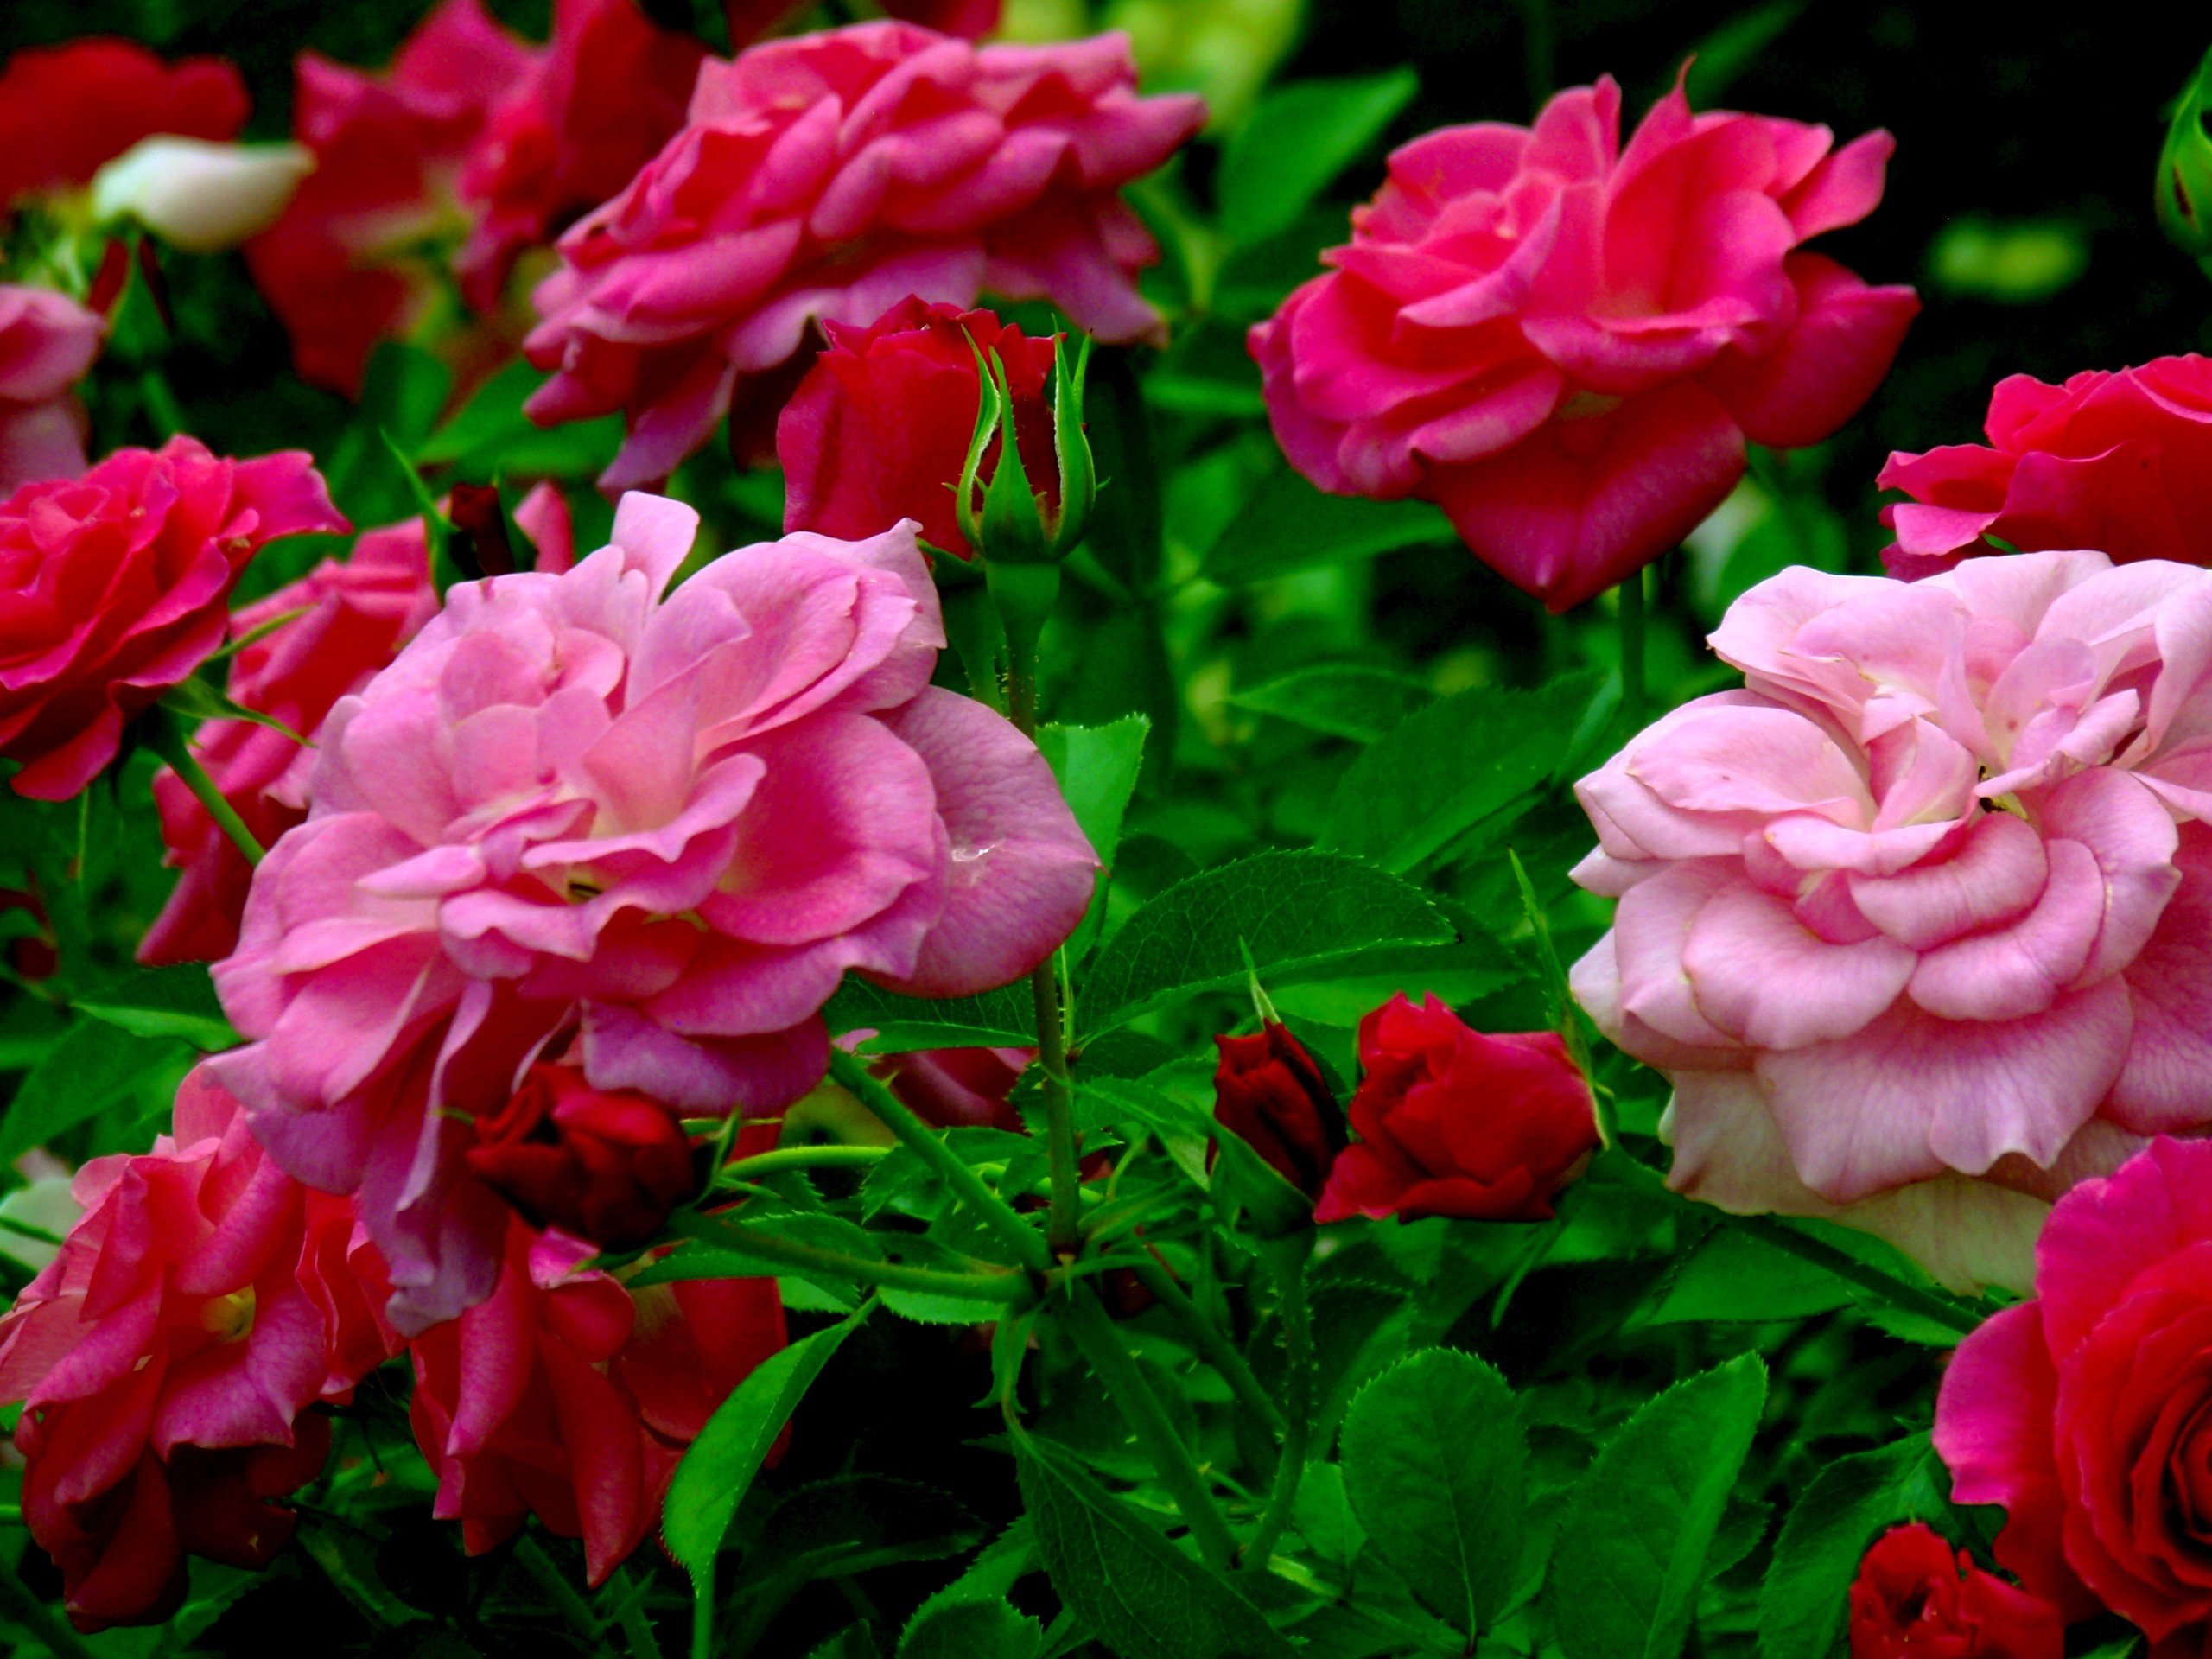 Light and dark pink roses hd wallpaper background image - Pink roses background hd ...